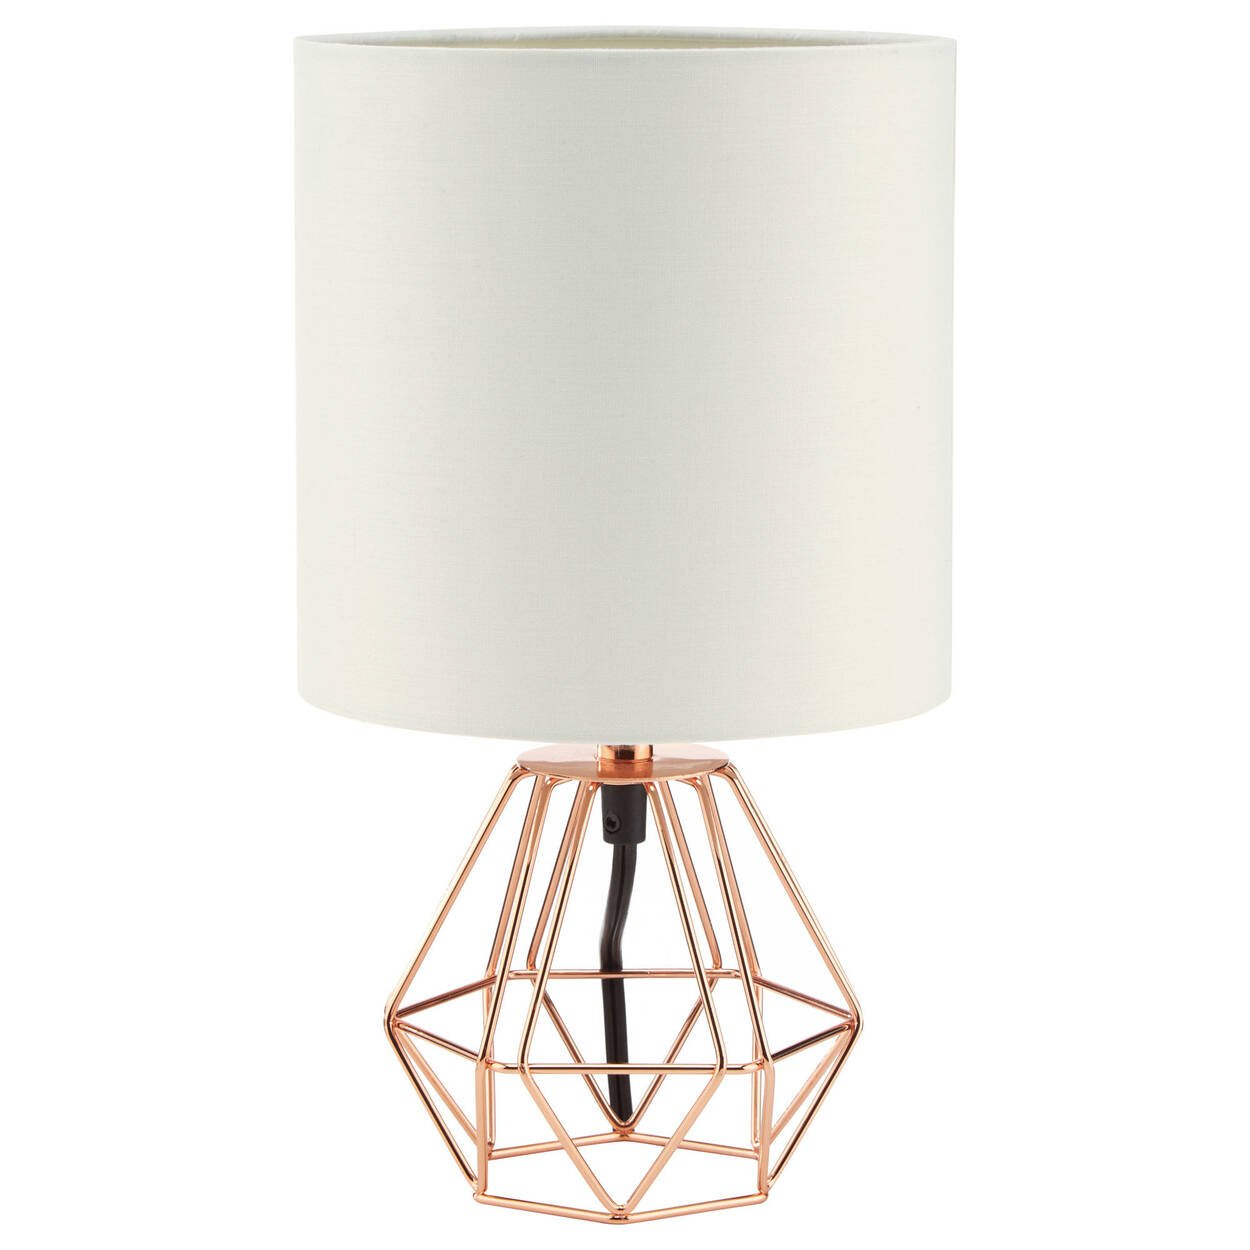 Geometric metal wire table lamp bouclair geometric metal wire table lamp greentooth Images